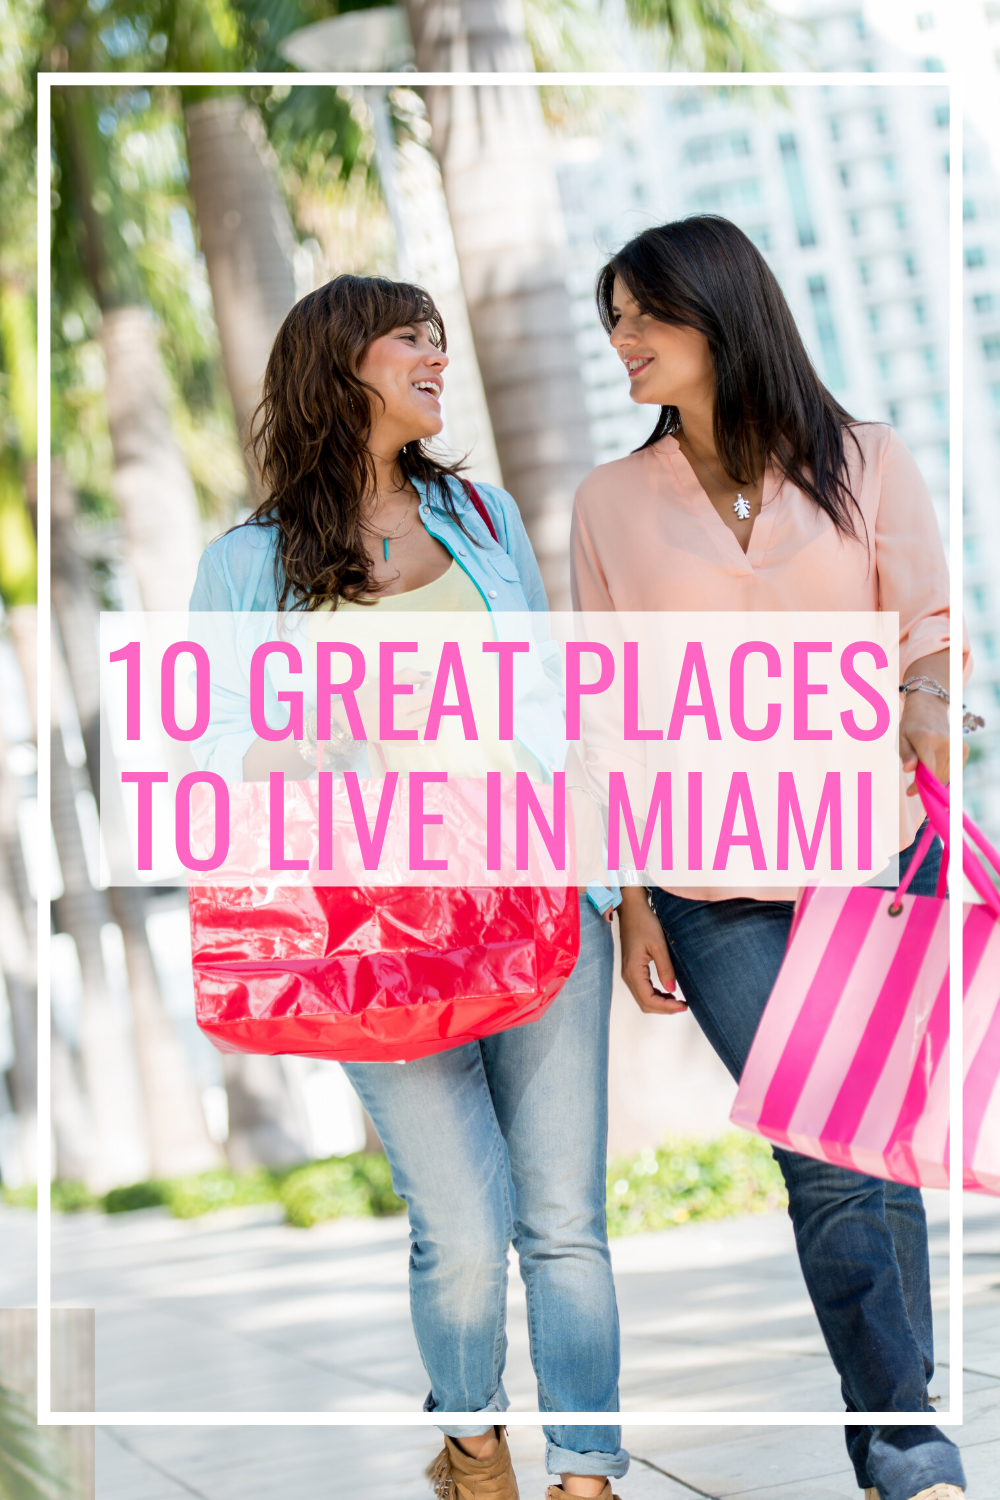 FIND the 10 great places to live in Miami here. While many might immediately picture South Beach when they think about the dream destination in Miami, this vibrant city has so many more outstanding communities worthy of being called home. #placestoliveinmiami #miamilife #placestoliveinmiami #bestplacesinmiami